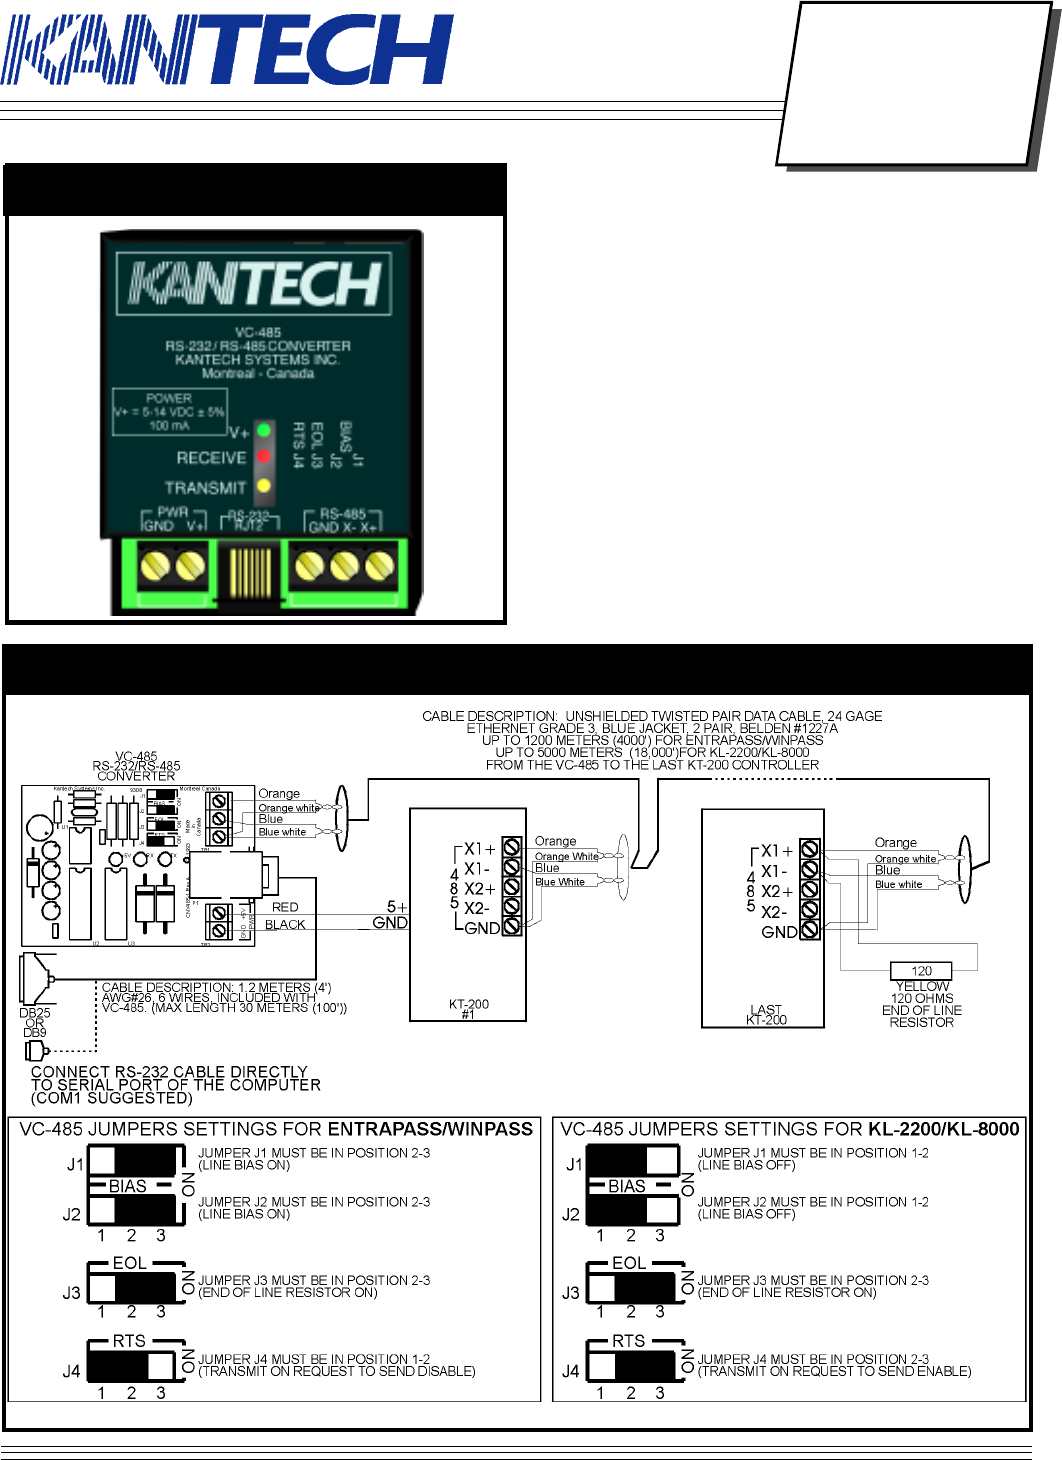 sony wiring diagram with Vc485 on Vc485 also 220 Volt Dryer Outlet Wiring Diagram as well D 61 e moreover Tv Inputs Outputs Connections Cables besides Product m Kenwood Kdc Bt73dab p 31197.